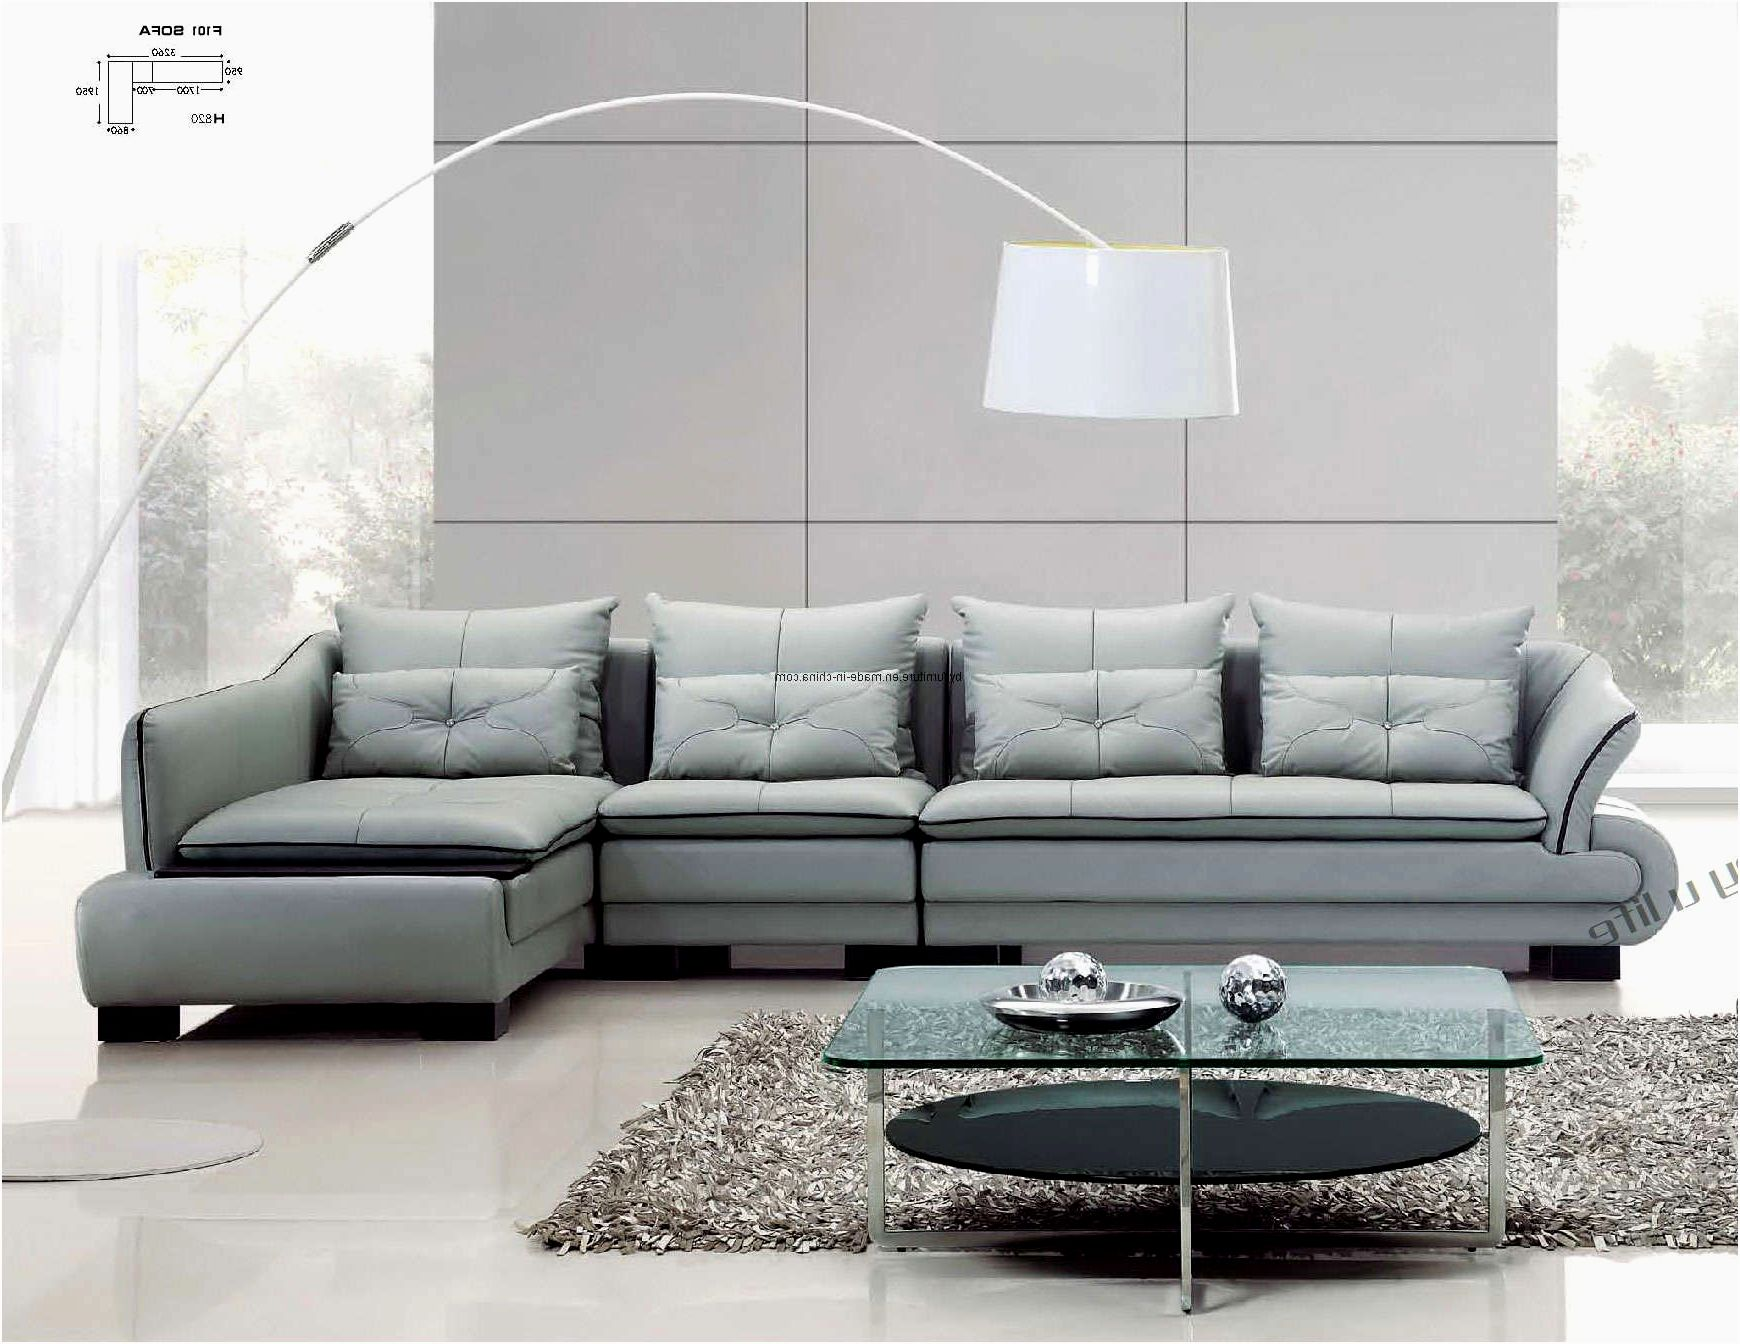 latest sectional leather sofas photograph-Unique Sectional Leather sofas Decoration